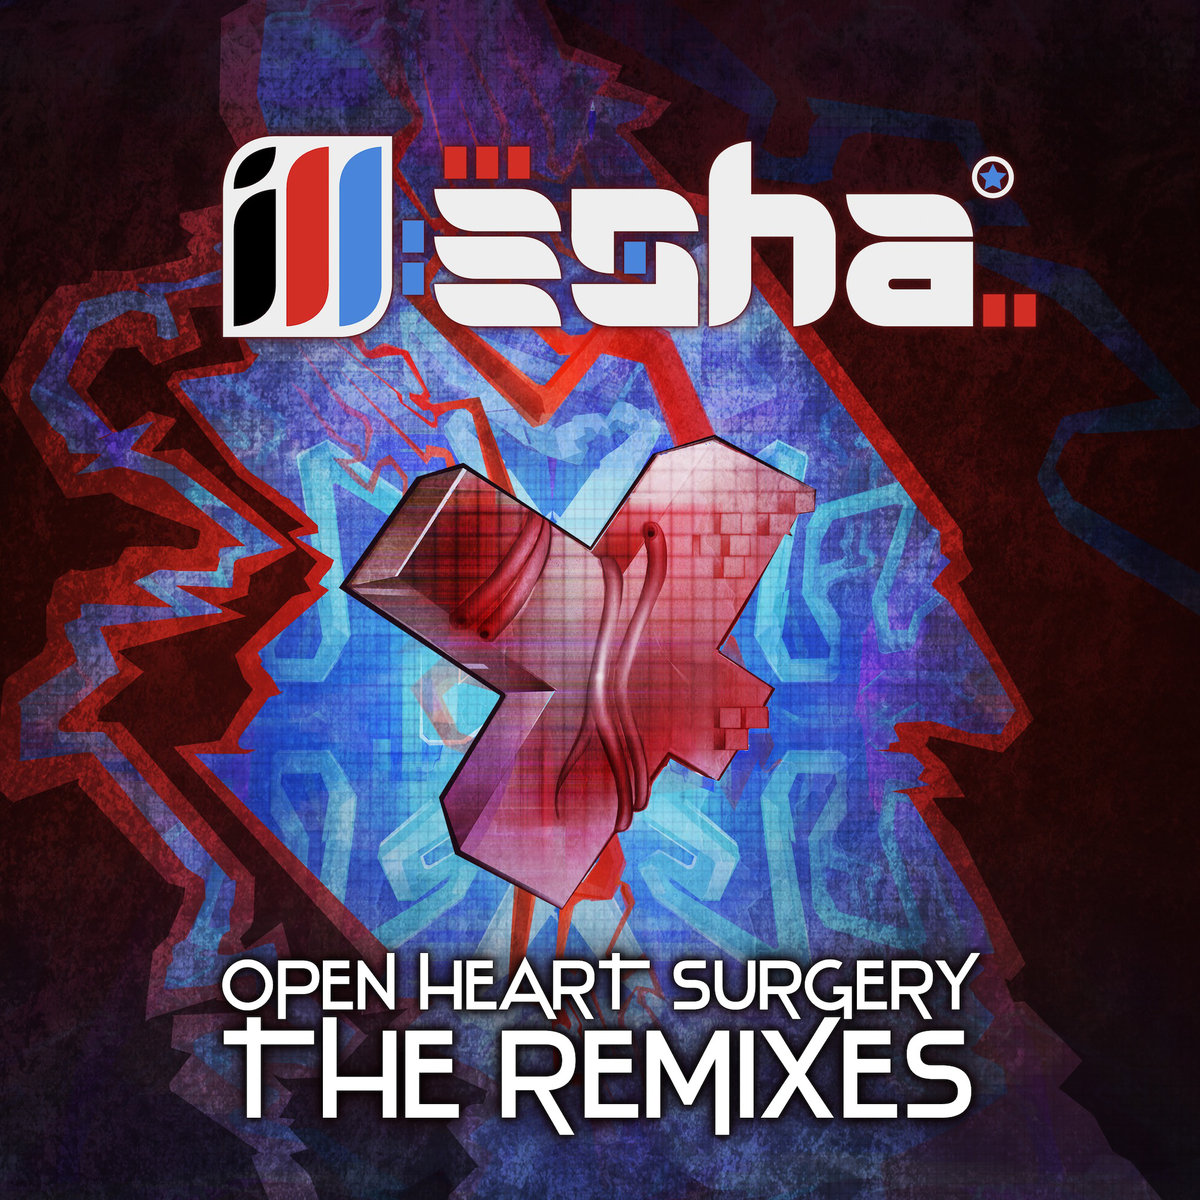 ill-esha - Dominoes (Brede & The Digital Connection Remix) @ 'Open Heart Surgery: The Remixes' album (Austin)